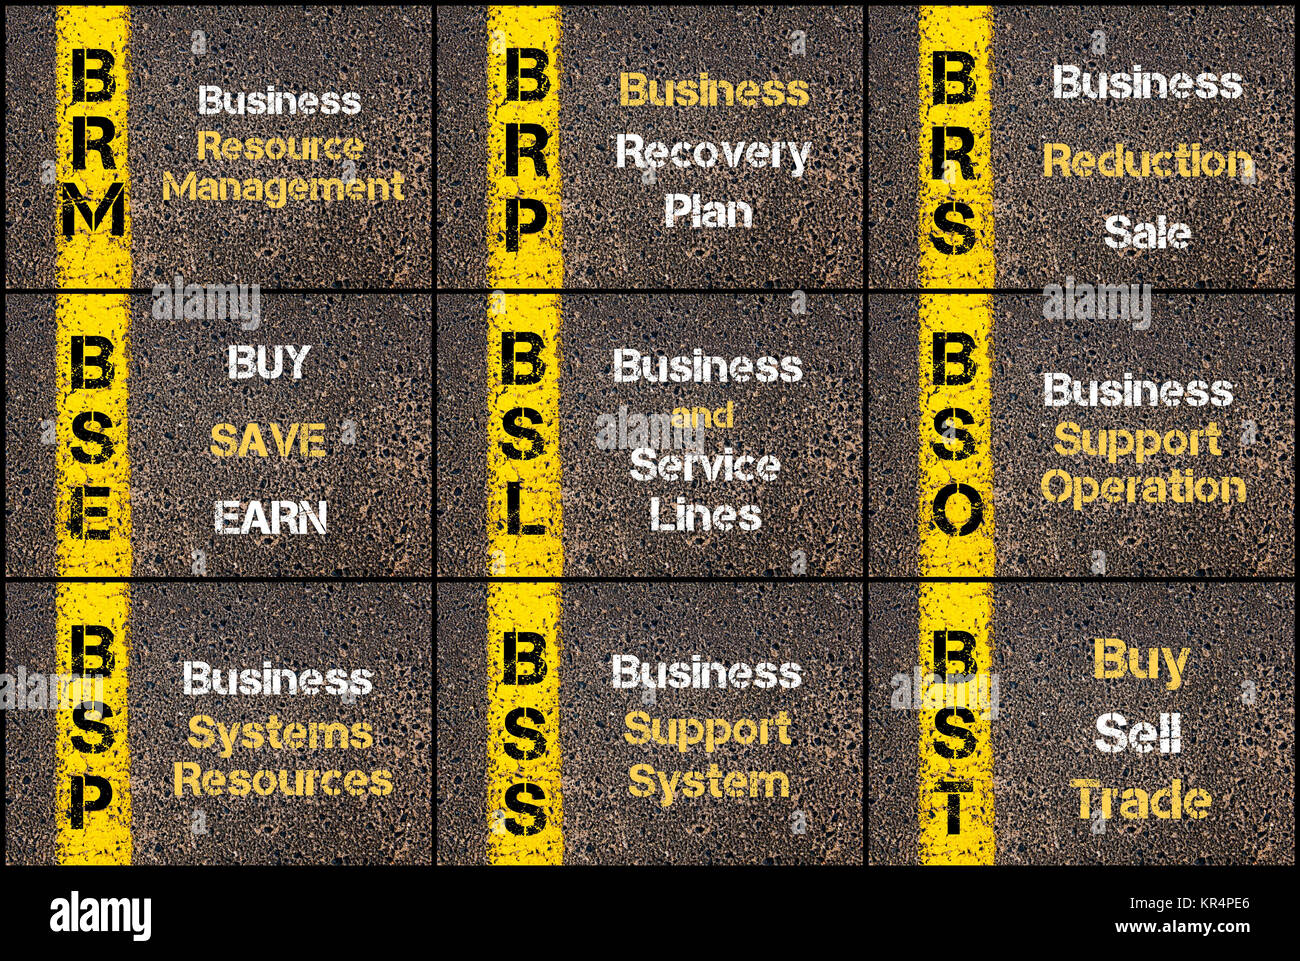 Photo collage of business acronyms - Stock Image